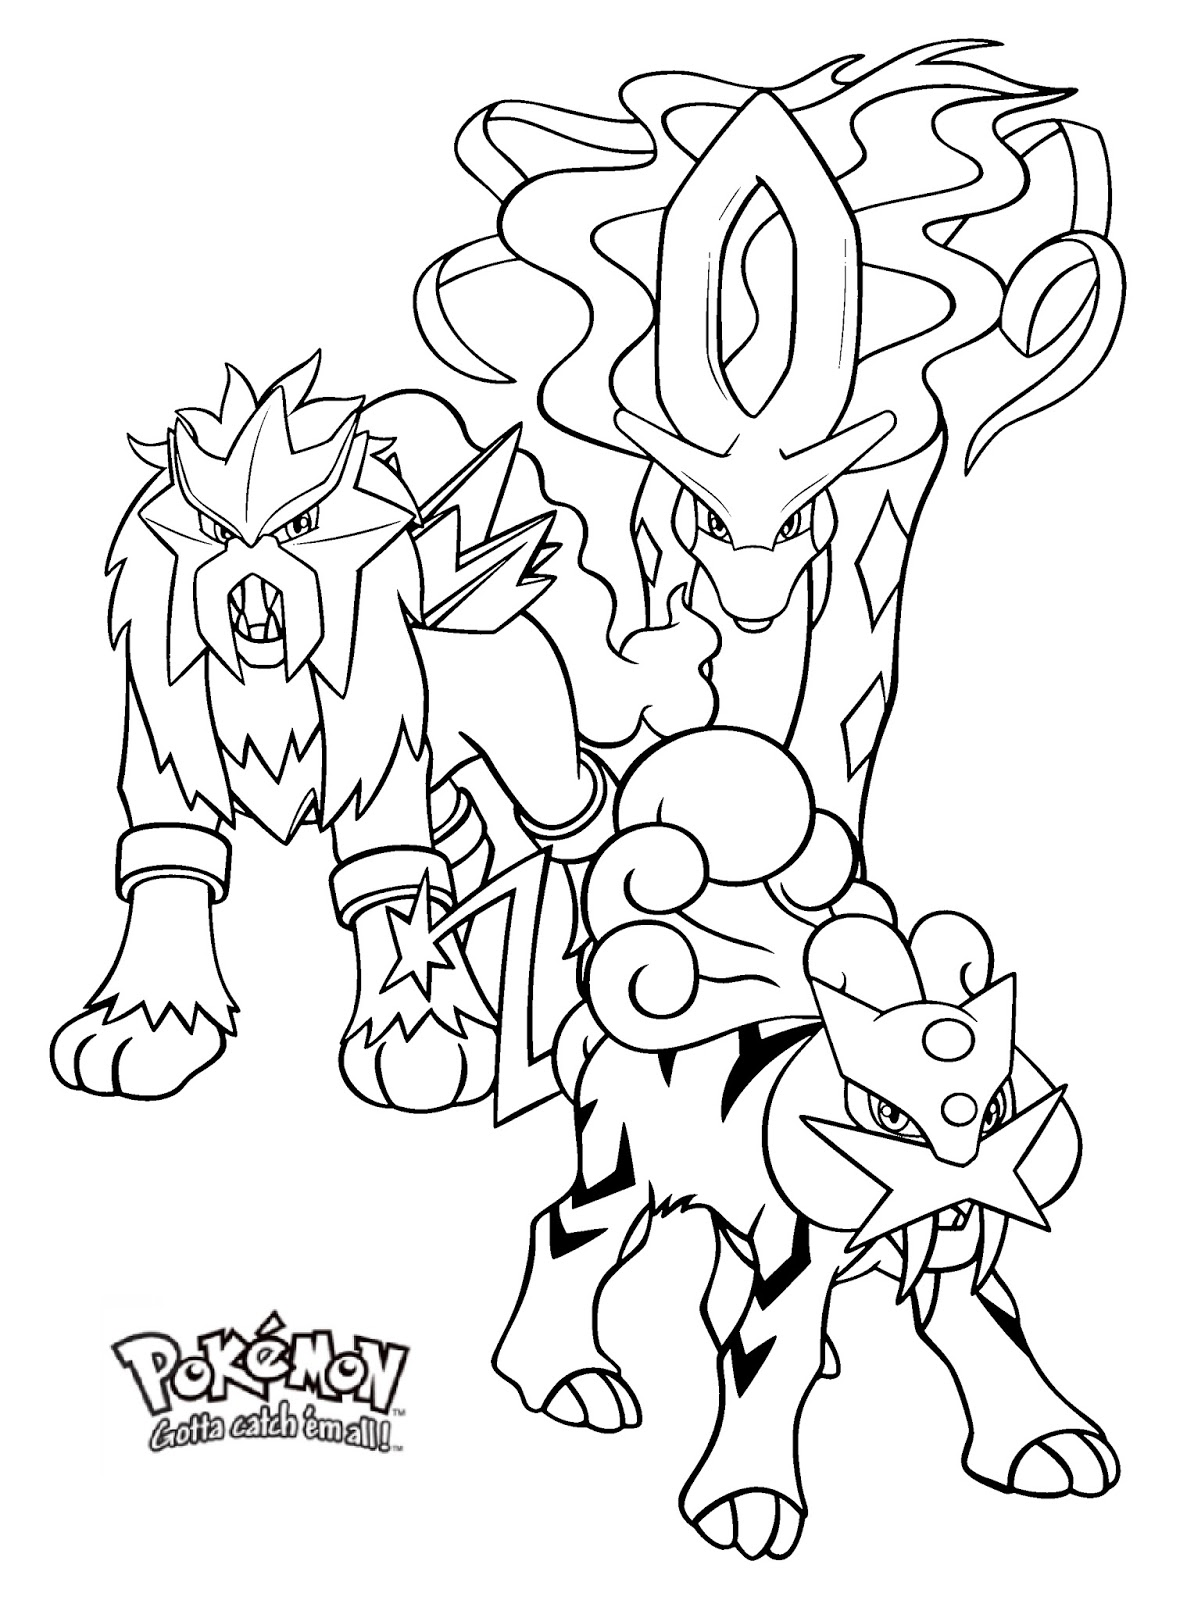 coloring pages pokemon legendary best free all legendary pokemon coloring pages image legendary pages pokemon coloring